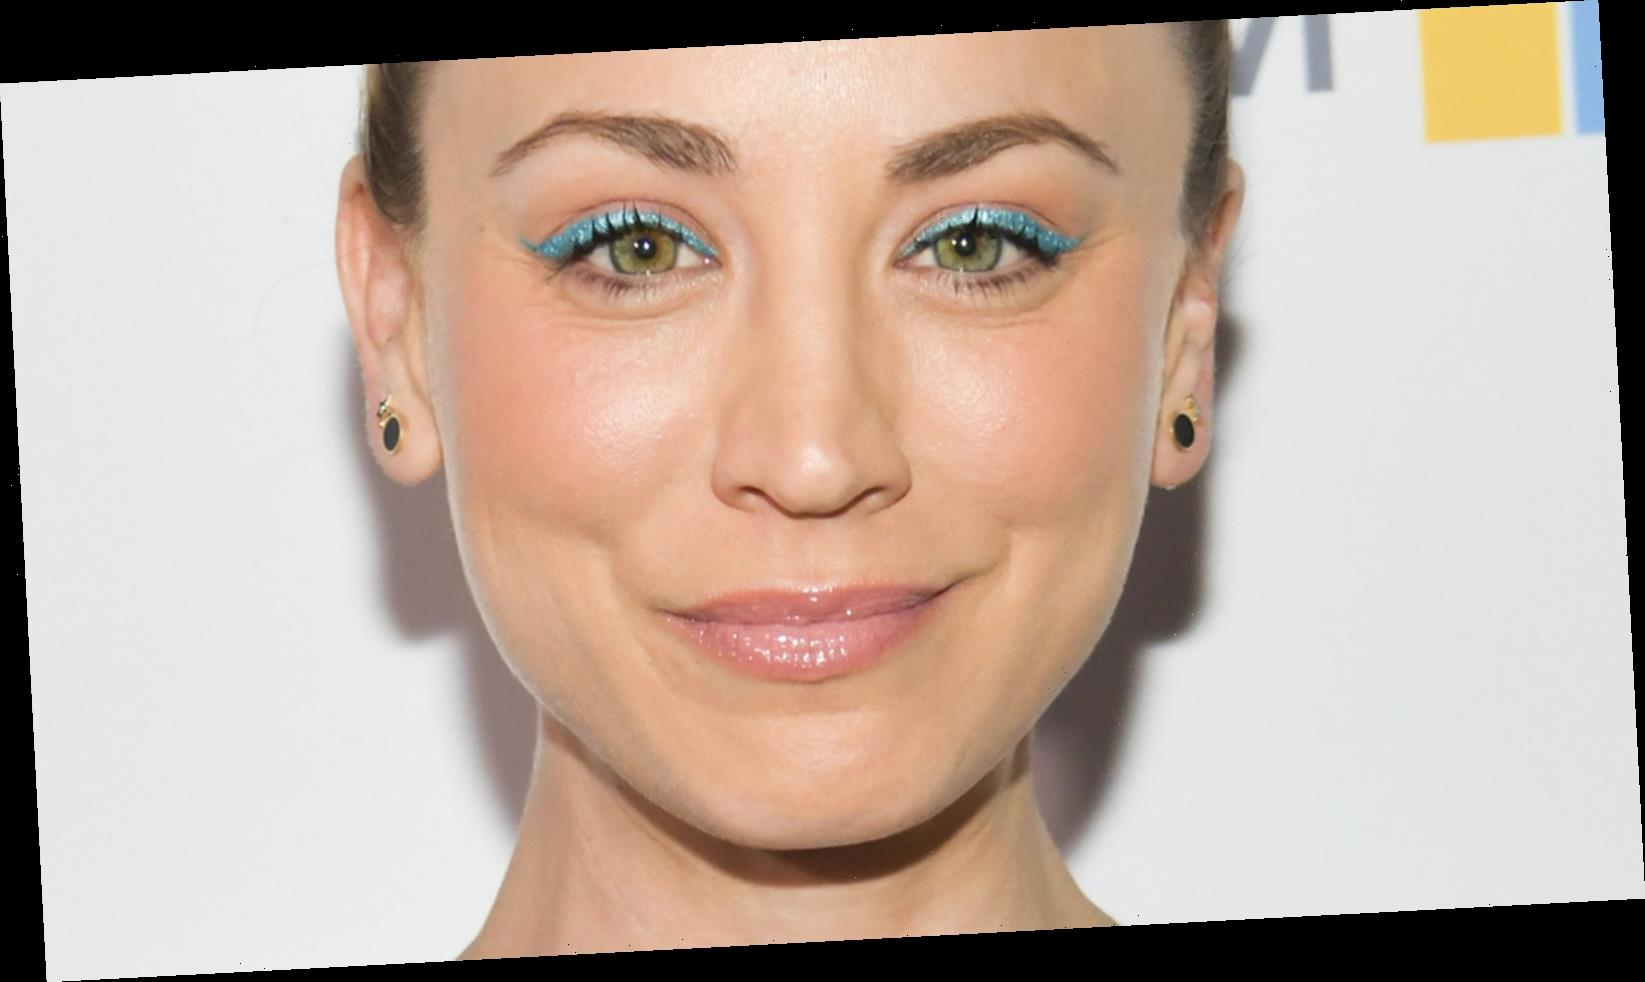 What You Don't Know About Kaley Cuoco